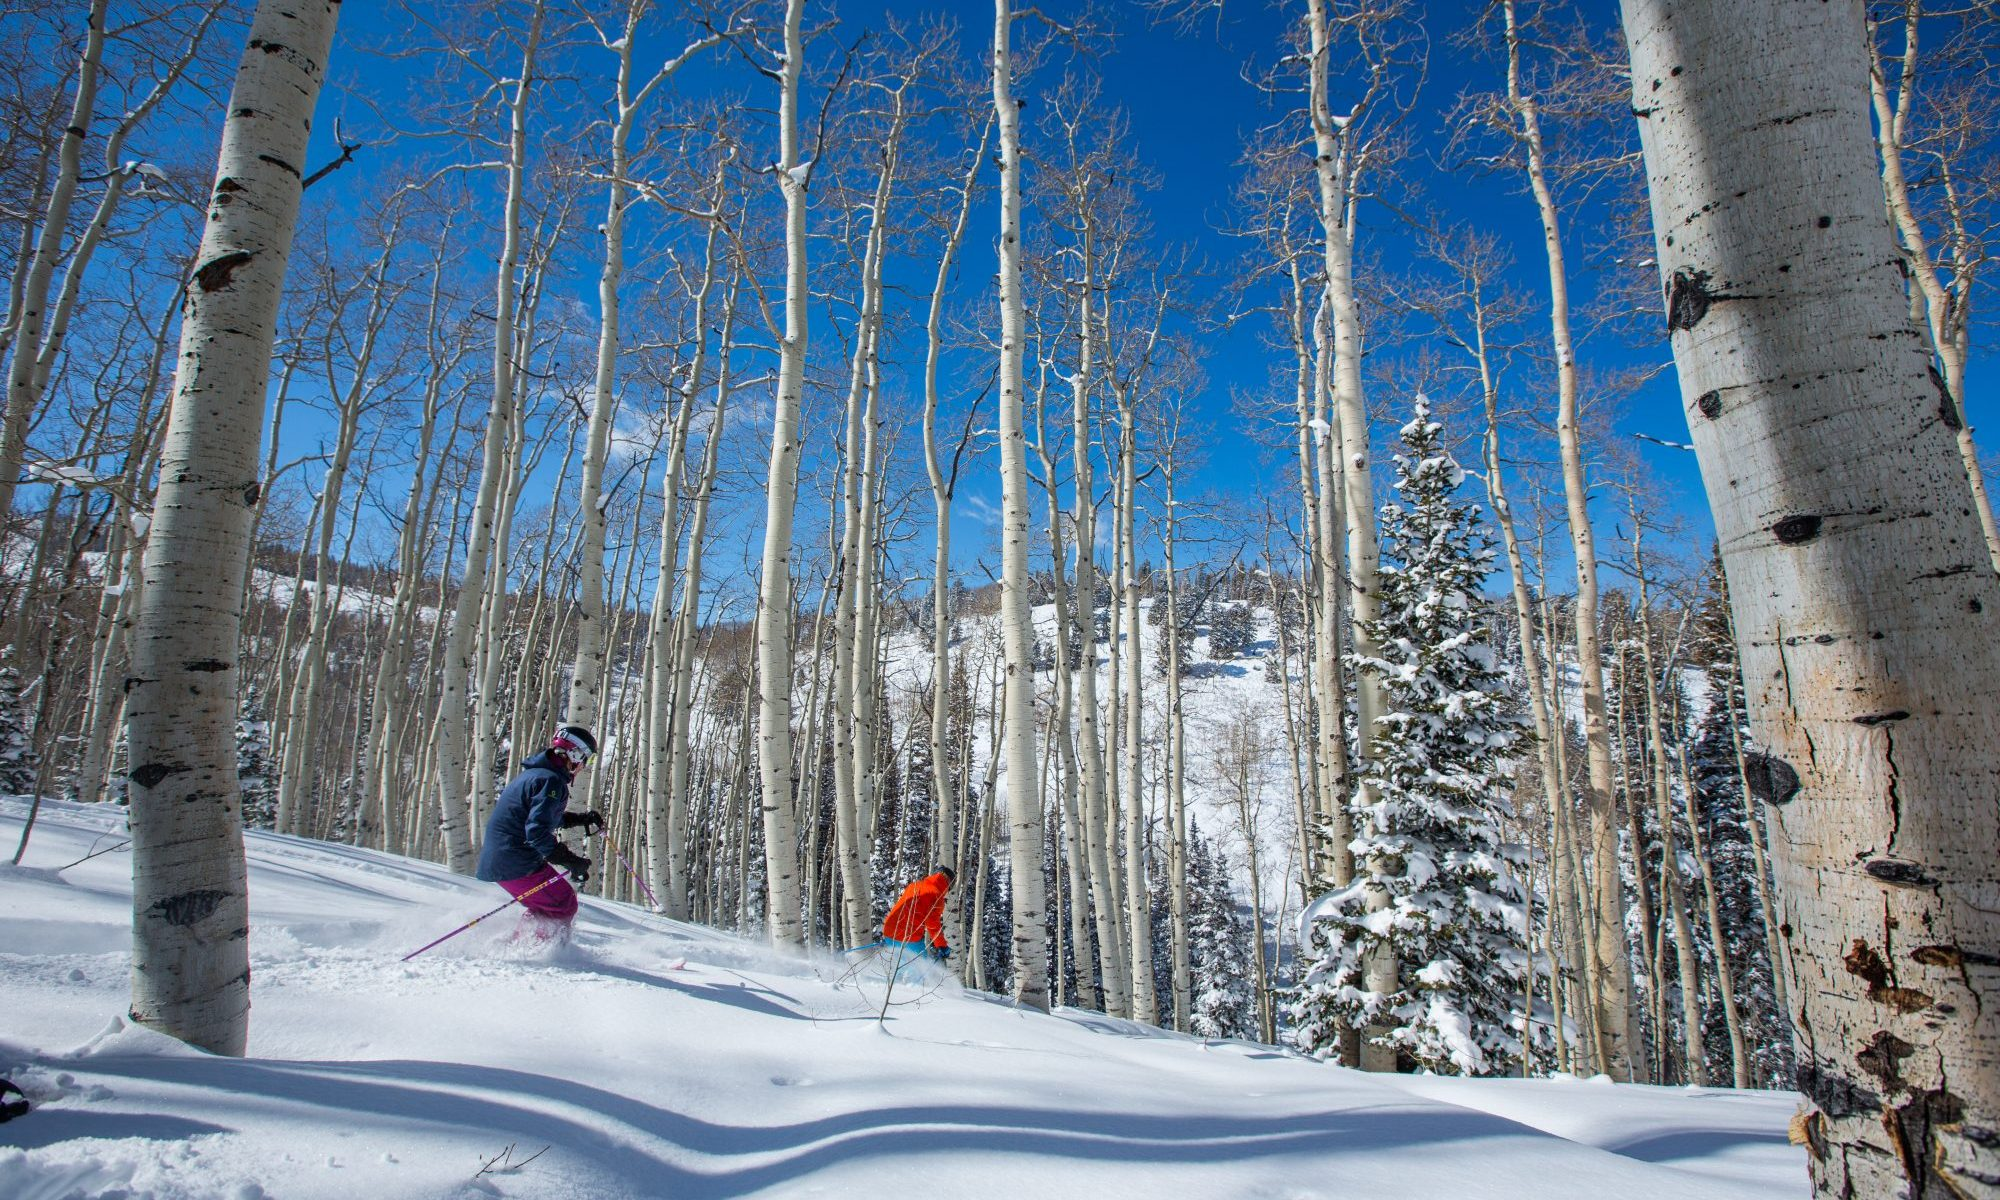 Skiing through the glades at Deer Valley Resort. Deer Valley who was awarded Best US Ski Resort by the World Ski Awards for the sixth year, opens this Saturday December 8th.